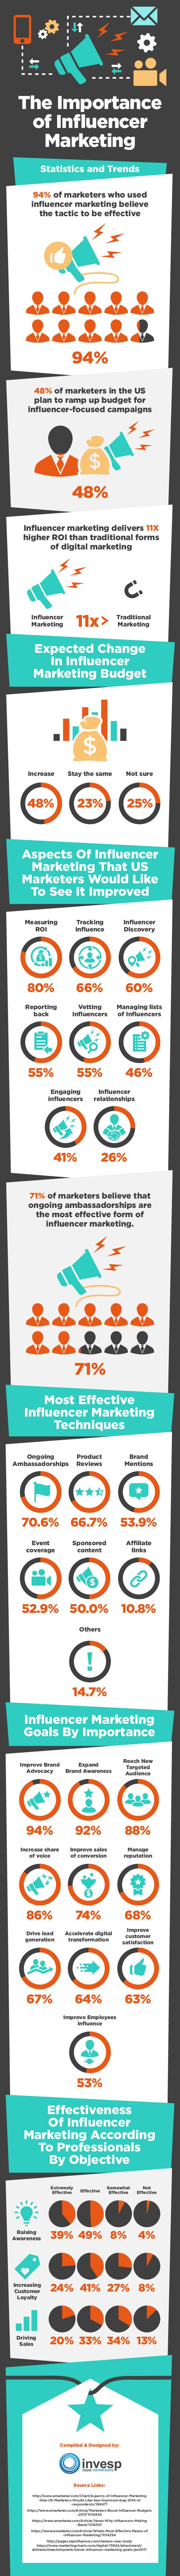 Why Influencer Marketing is Important [Infographic]